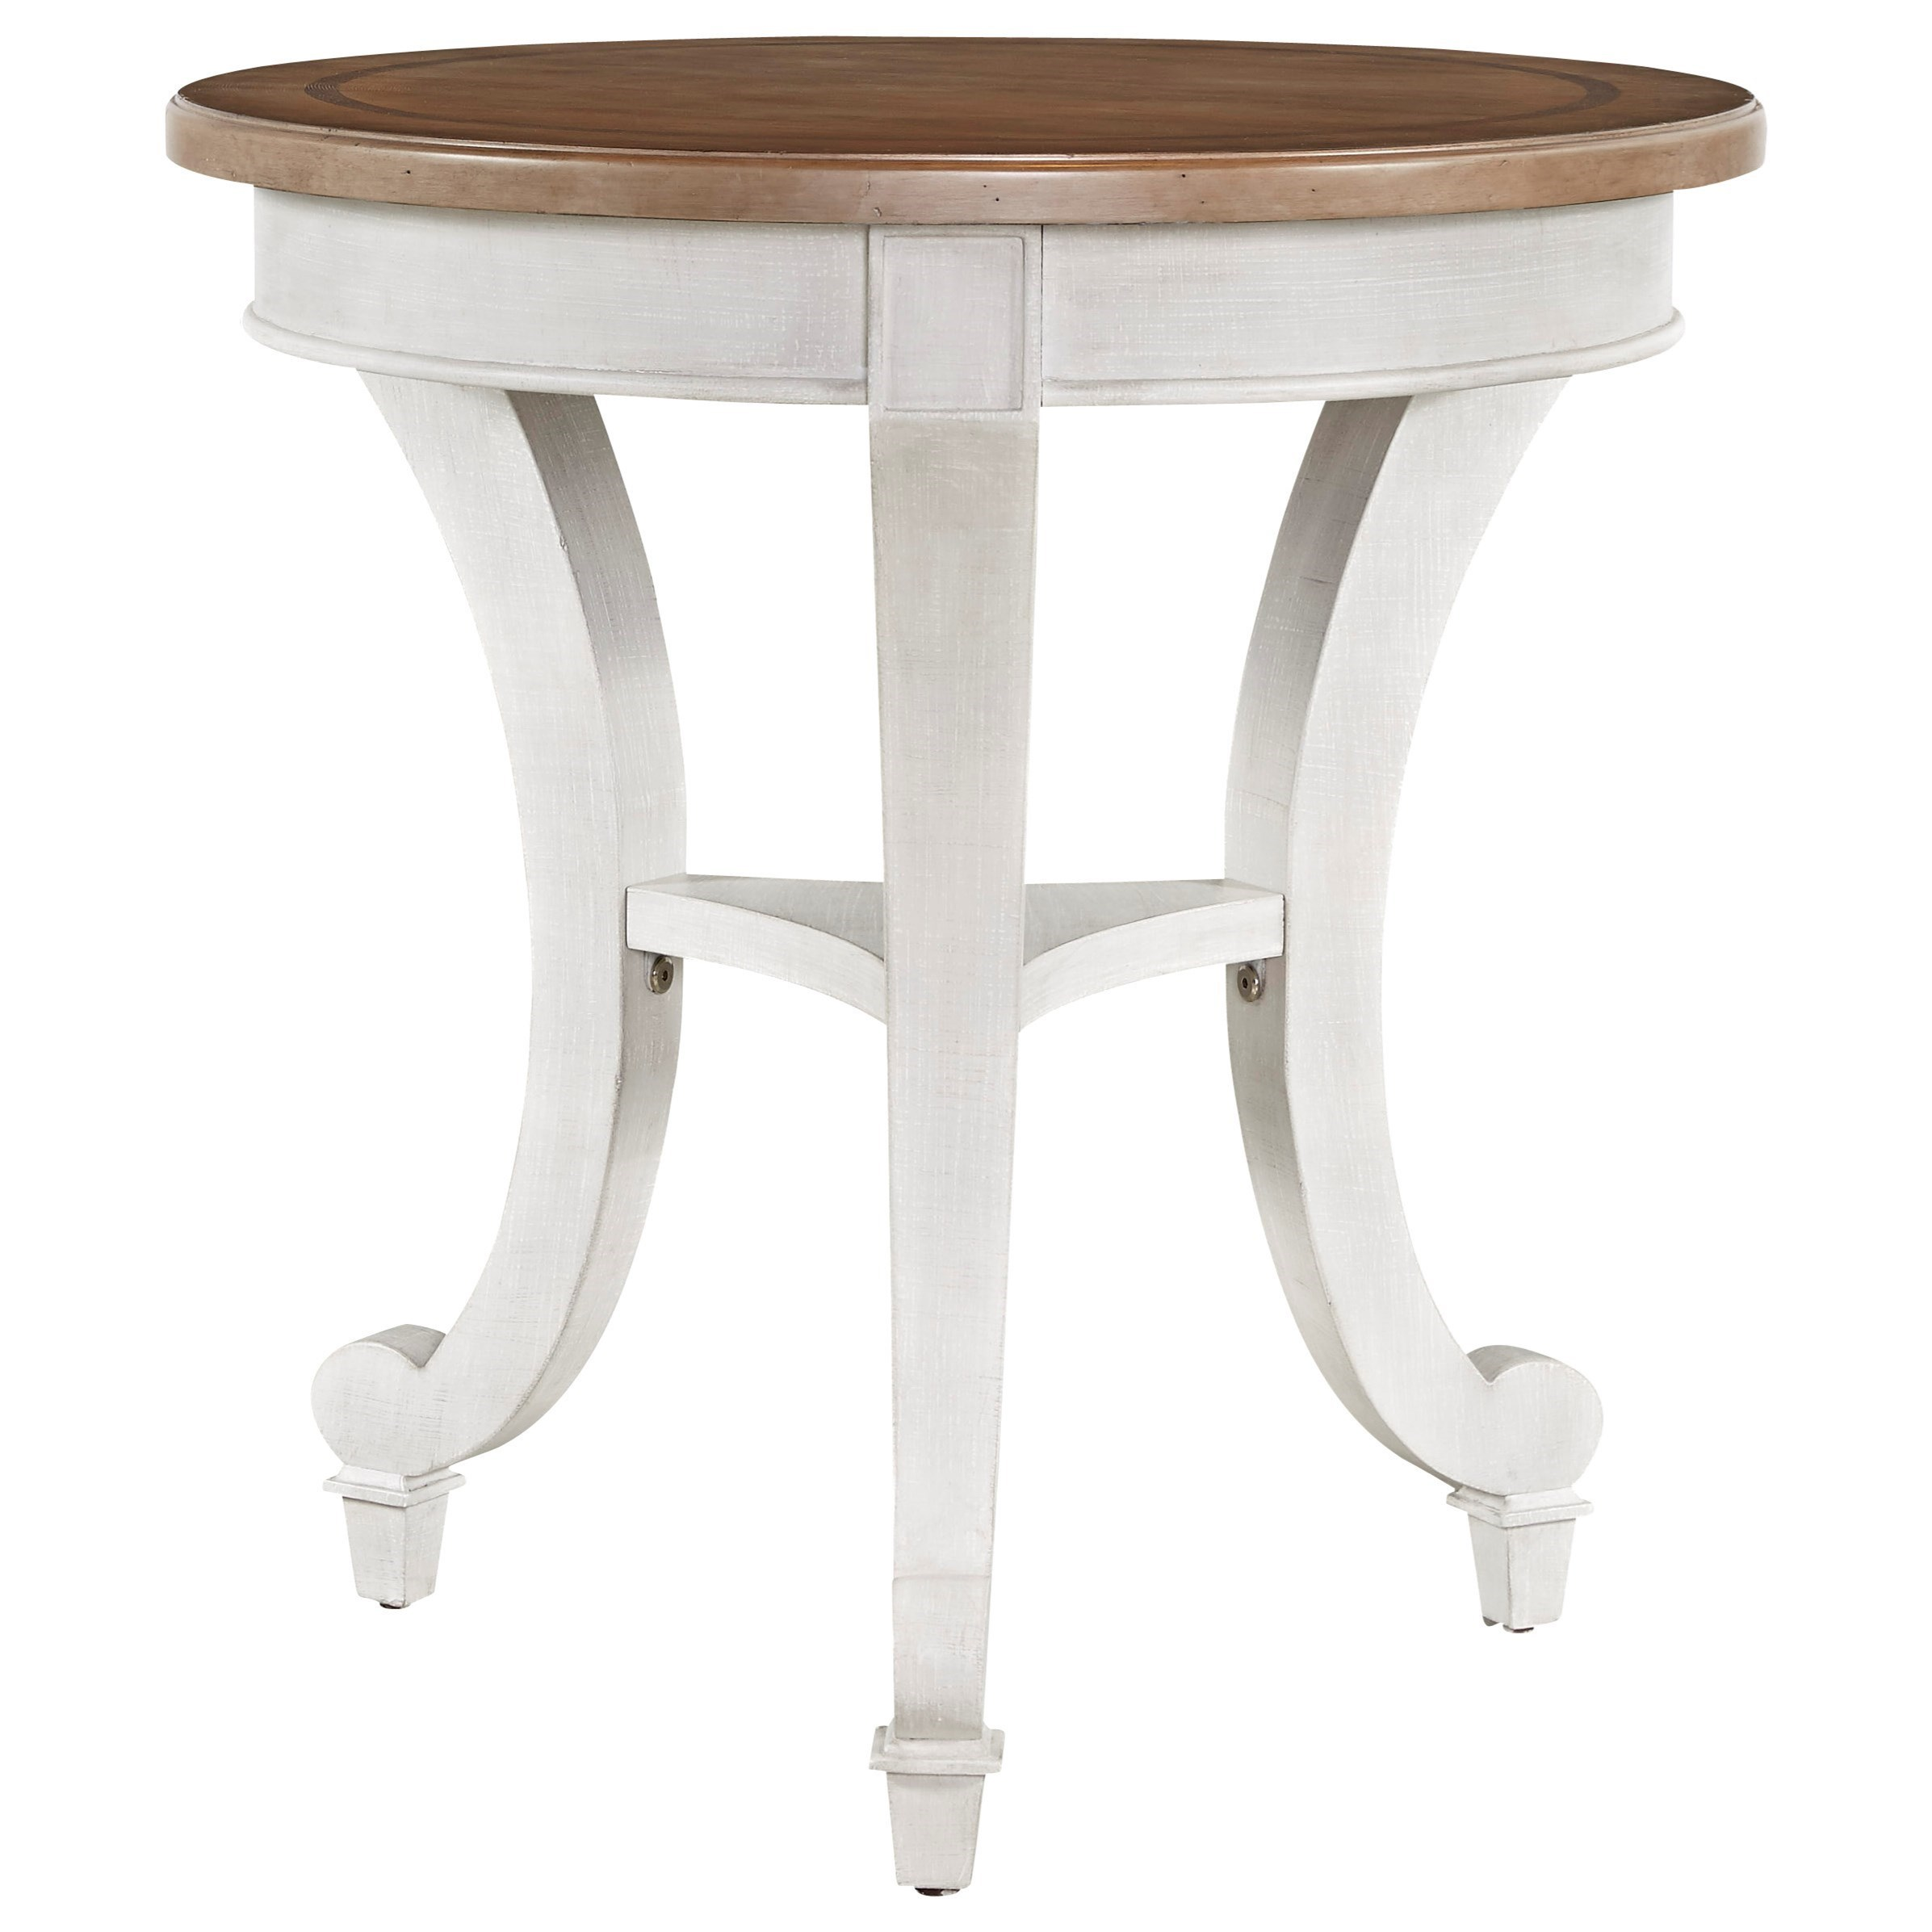 Postscript 764B815 Round Two Tone End Table By Universal